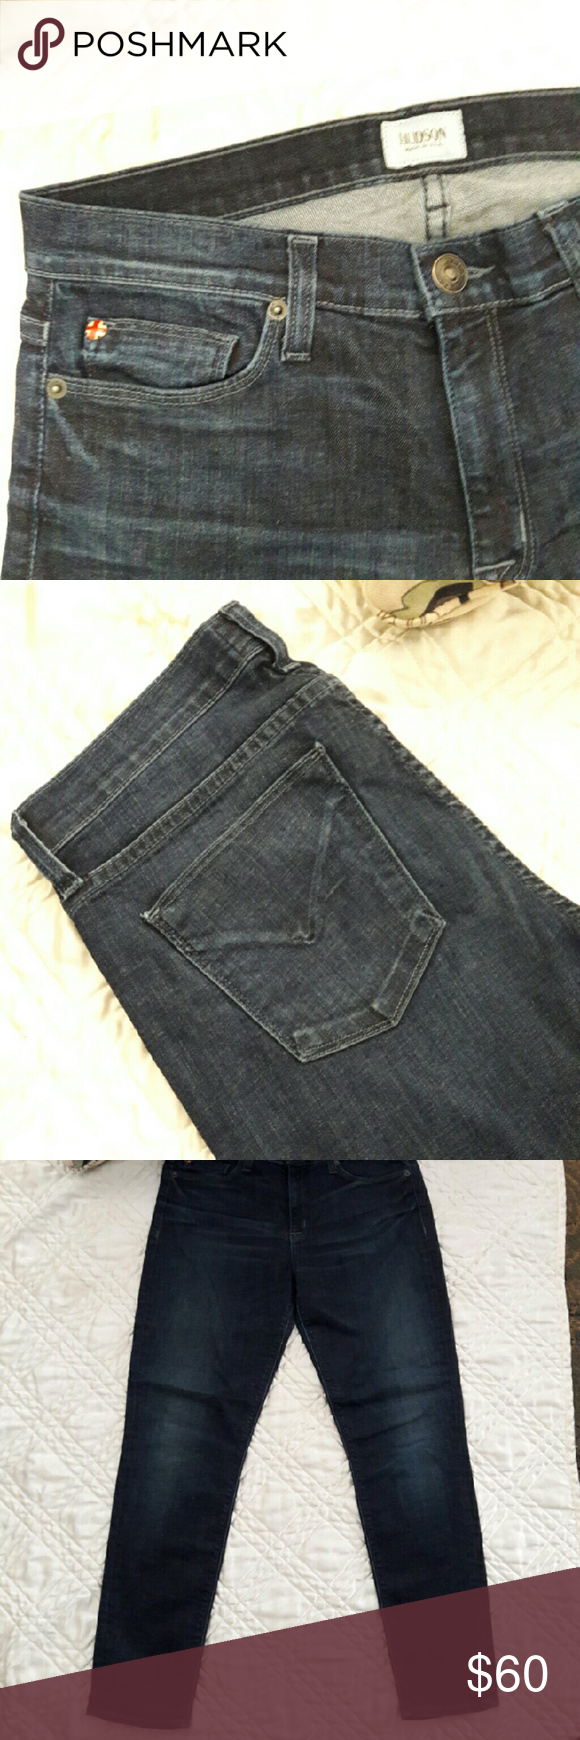 """Hudson Jeans Size 29 Hudson Jeans..very clean in great condition. Inseam 30"""" Just REDUCED FROM $60 TO $40 Hudson Jeans Jeans Skinny"""